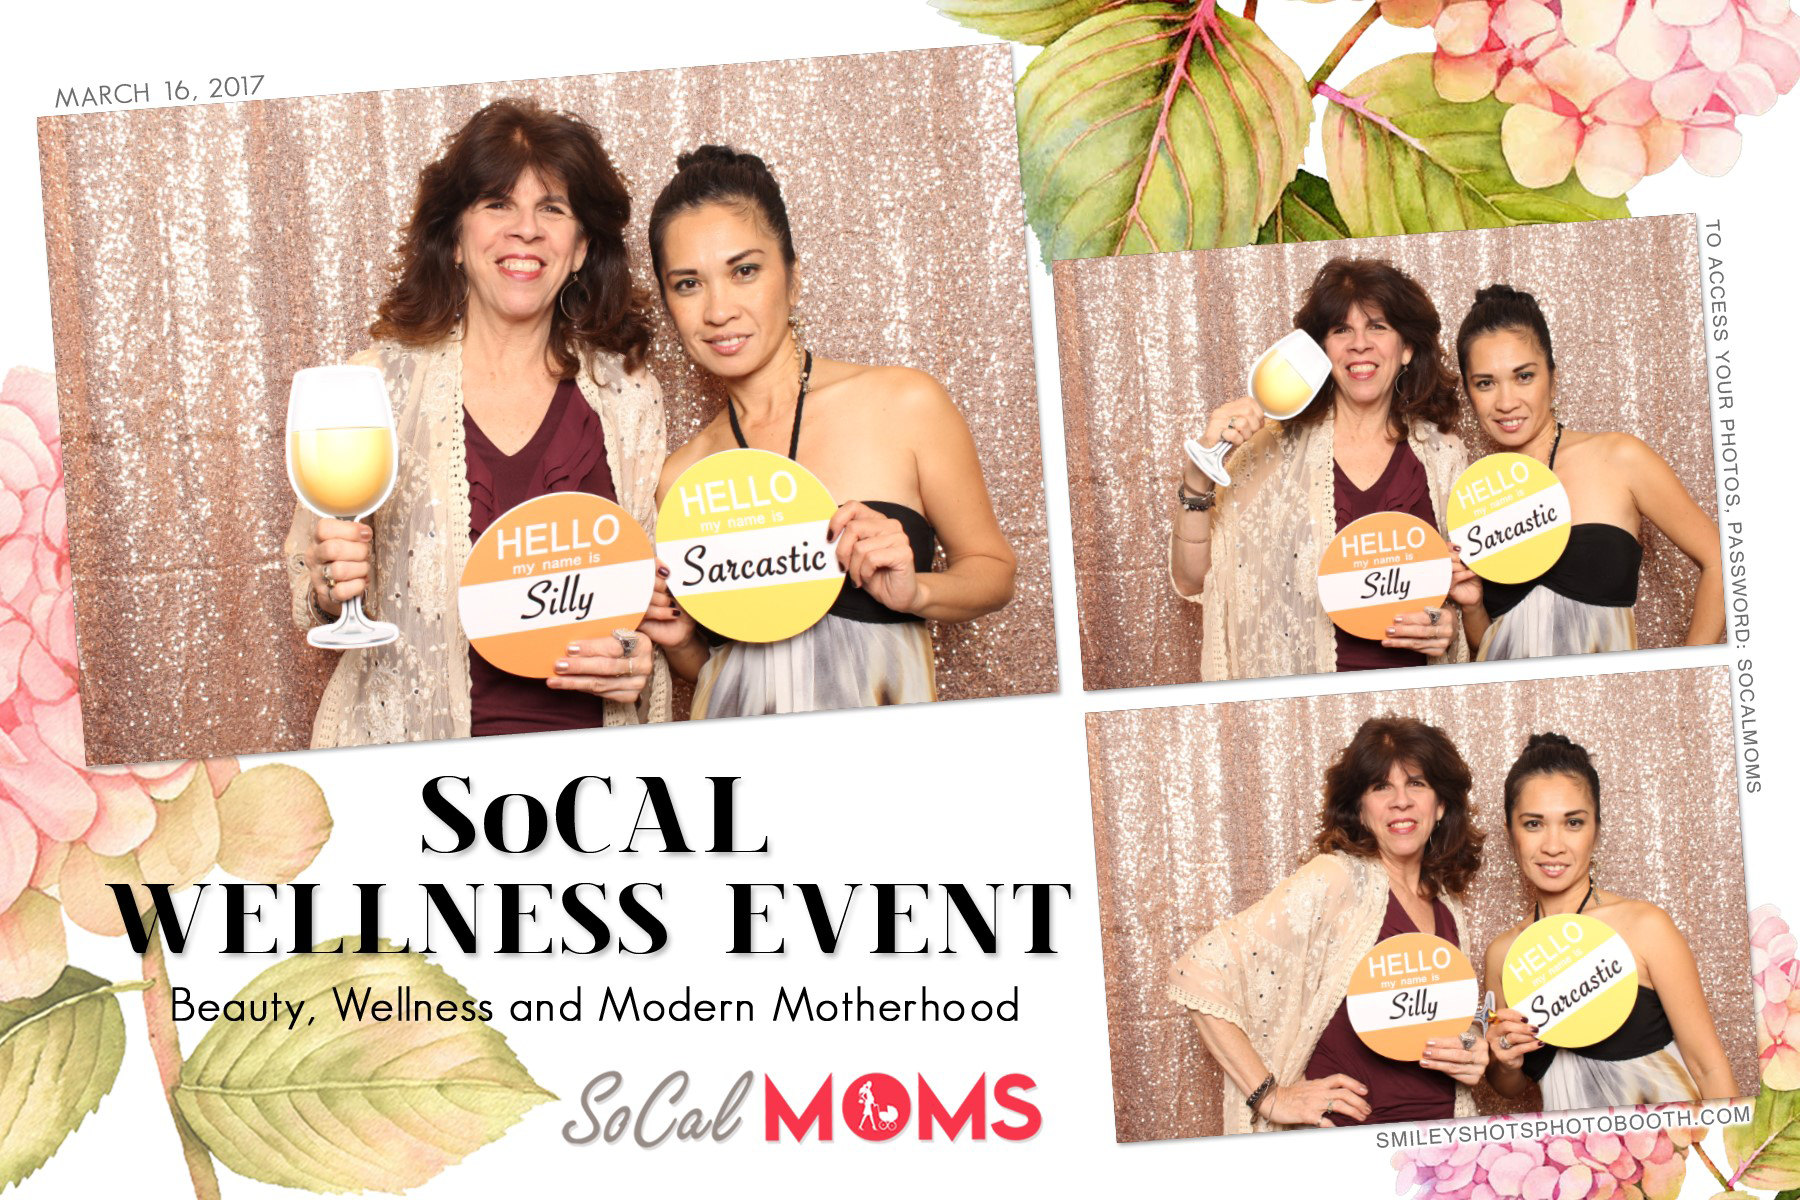 Socal Wellness Event Socal Moms Smiley Shots Photo Booth Photobooth (35).png